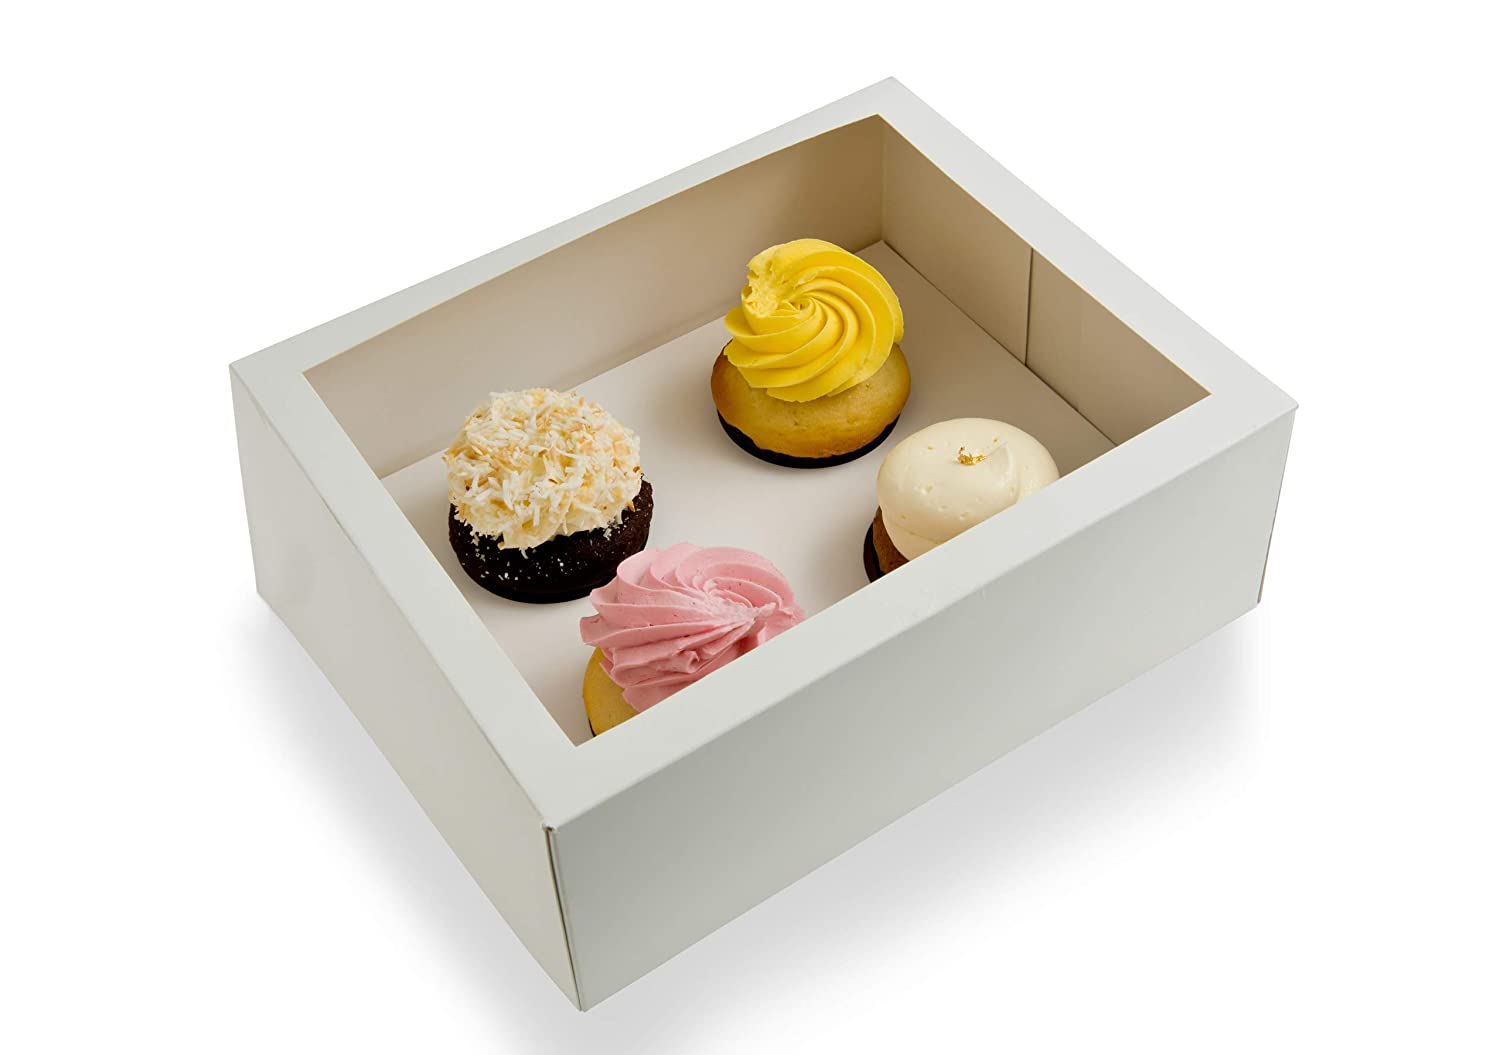 Window Cupcake Boxes (Holds 4) with Inserts Included - Sets of 25 - Just Pops Open - Ships Flat